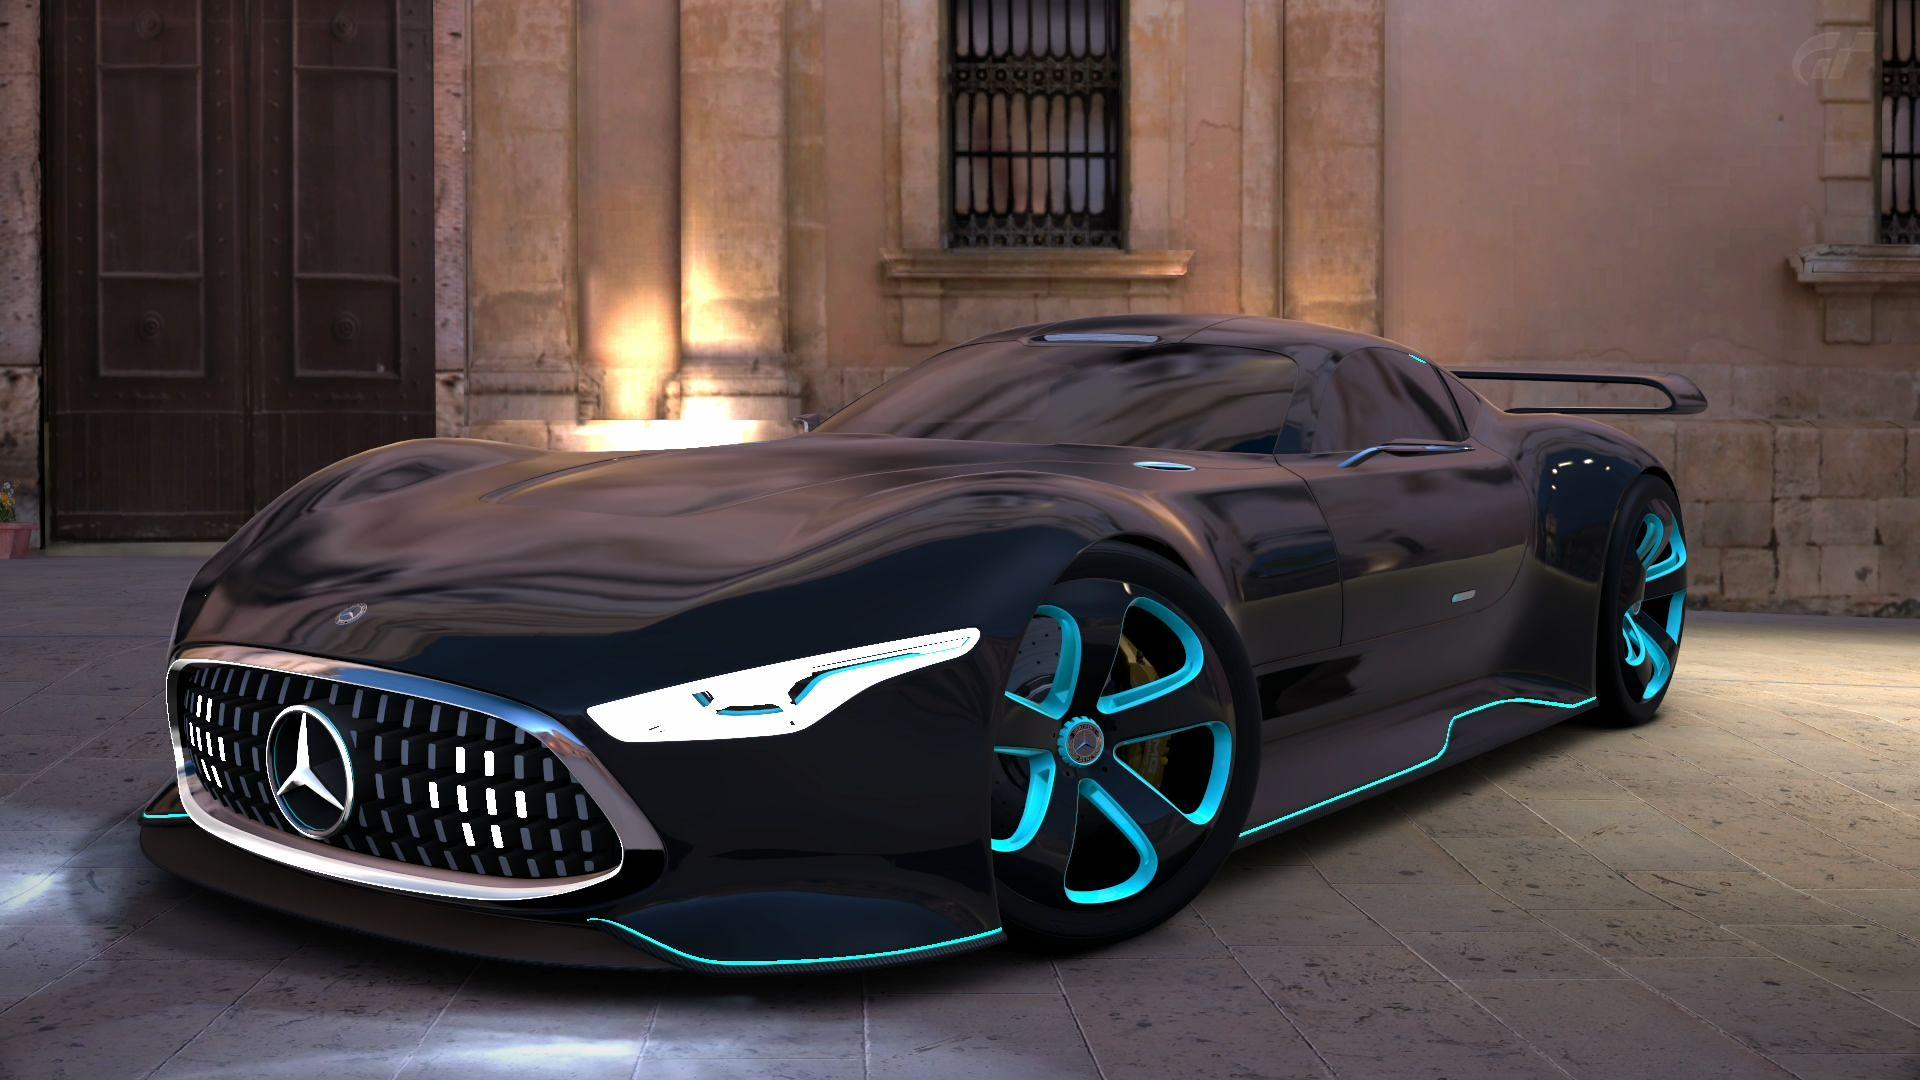 Gran Turismo 6 mercedes benz amg vision GT by Chernandez2020 on